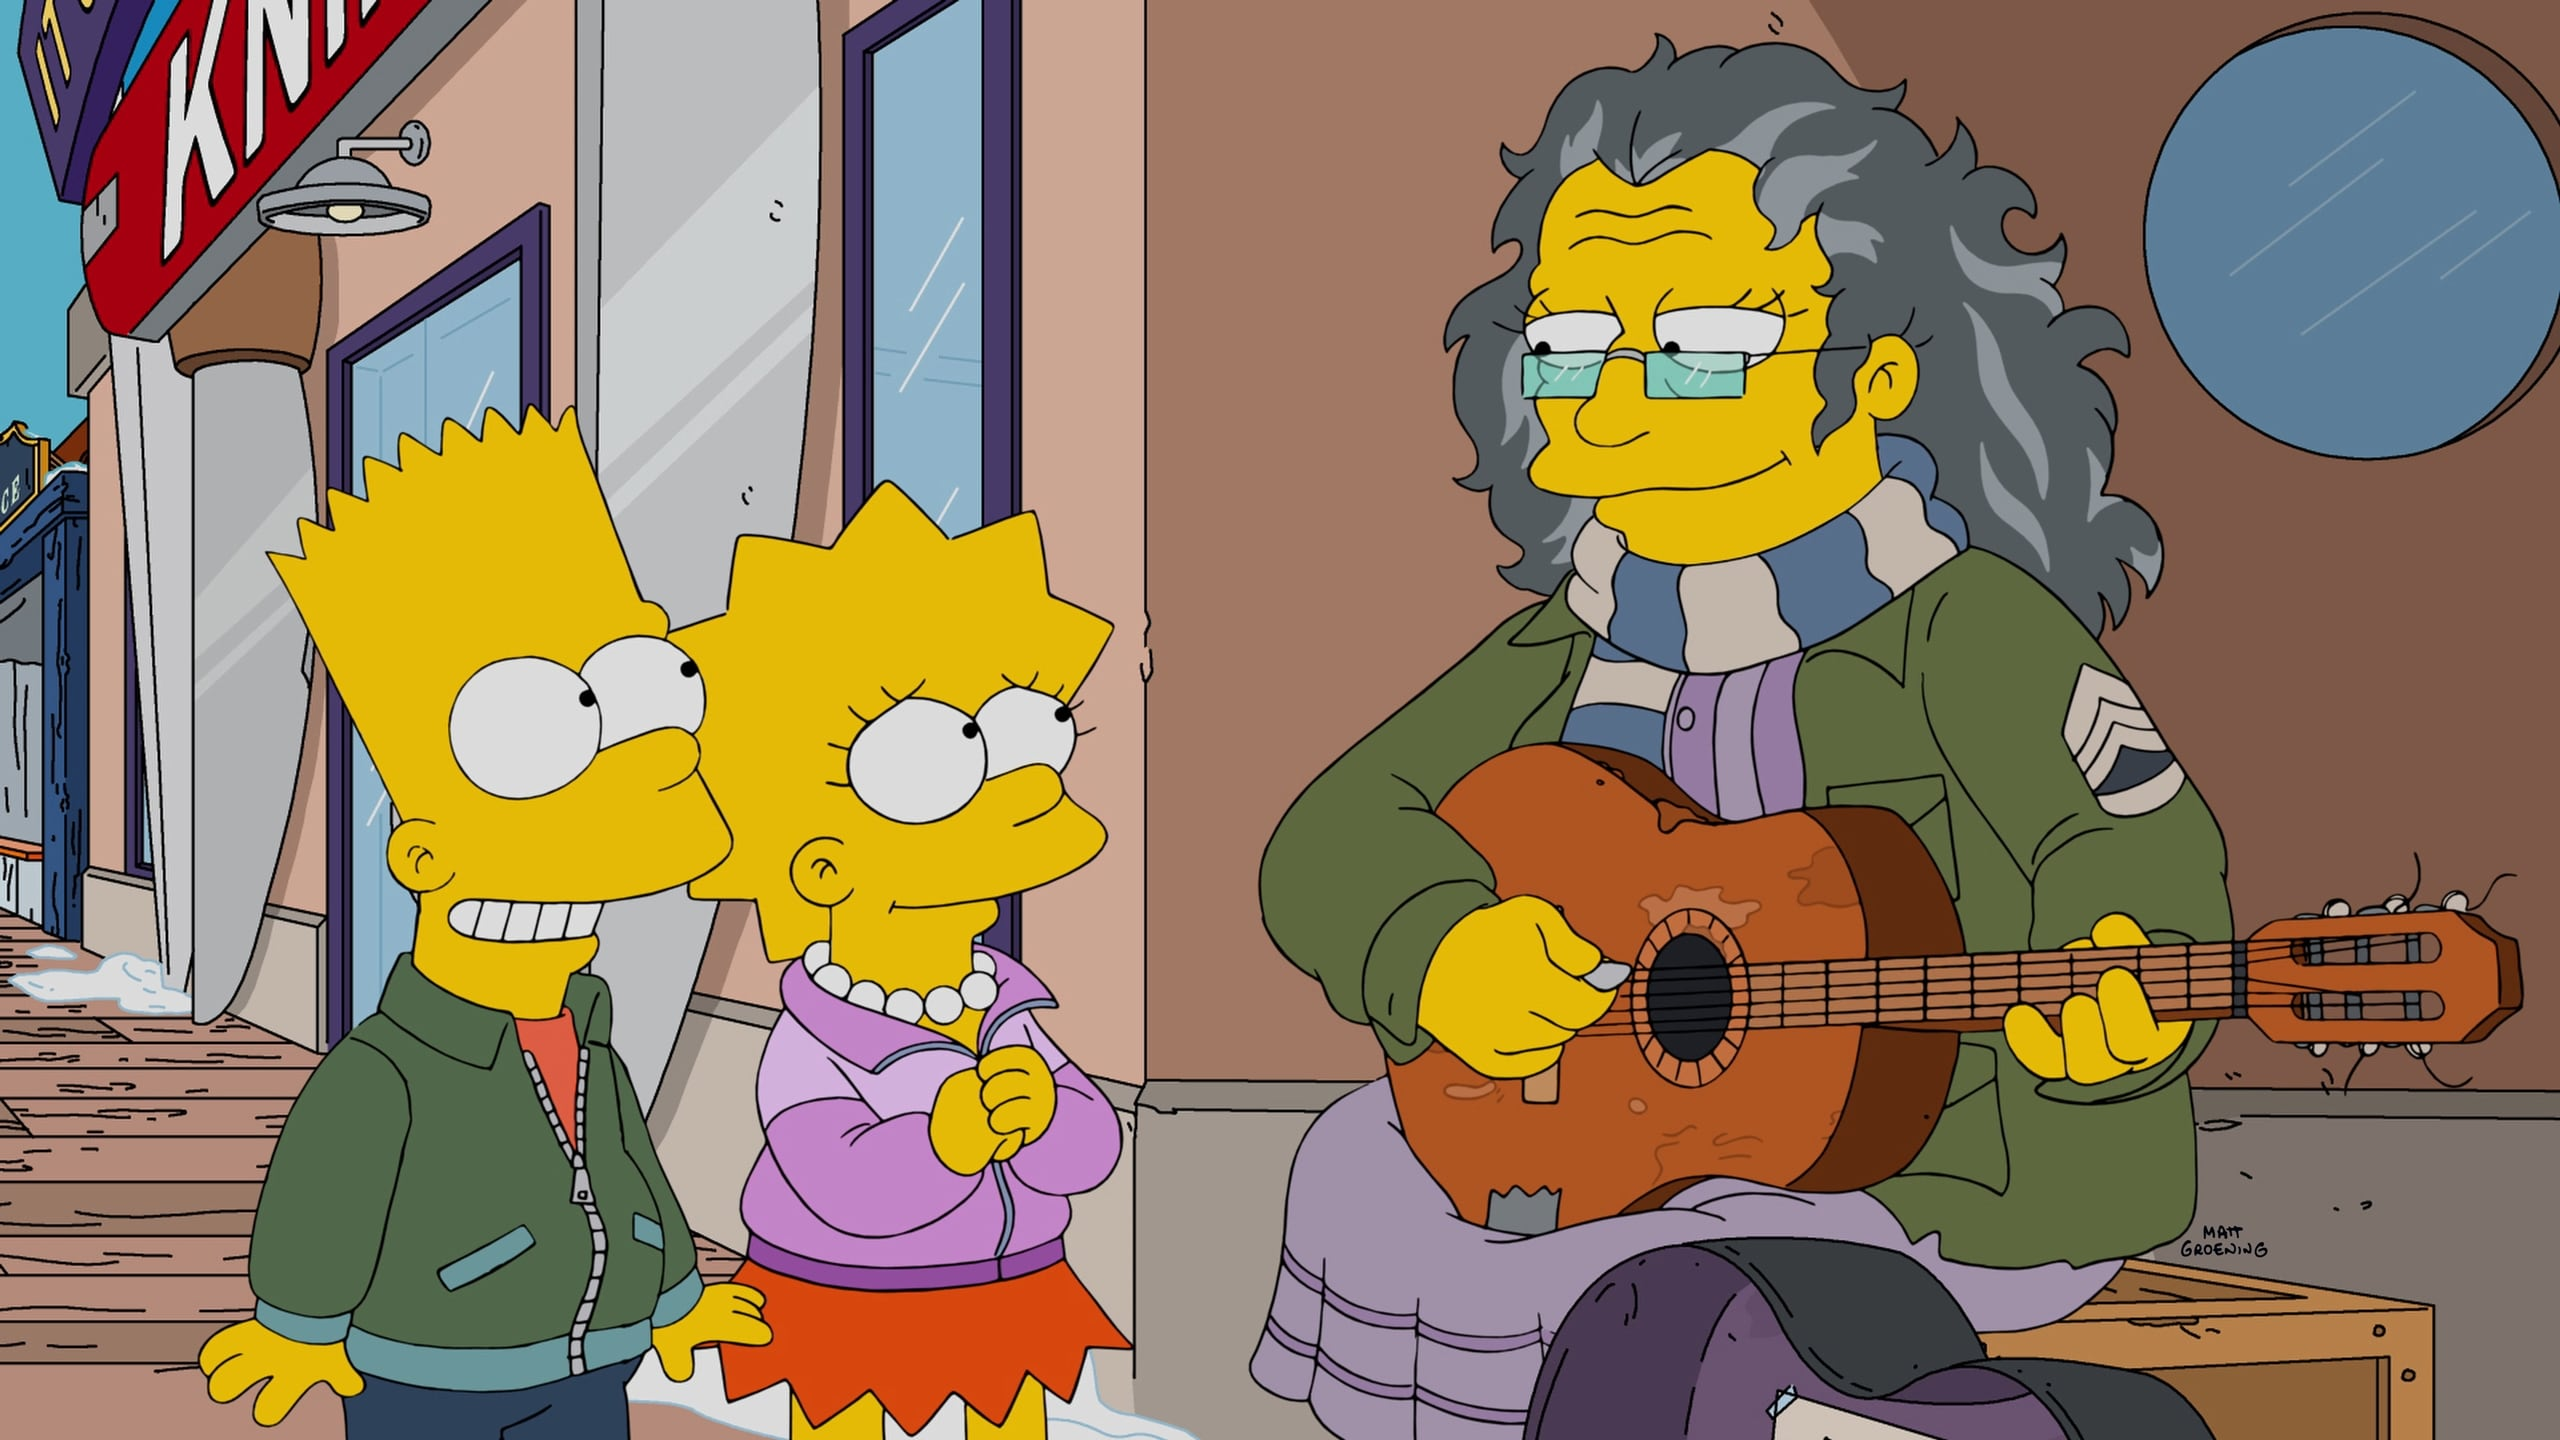 The Simpsons - Season 27 Episode 14 : Gal of Constant Sorrow